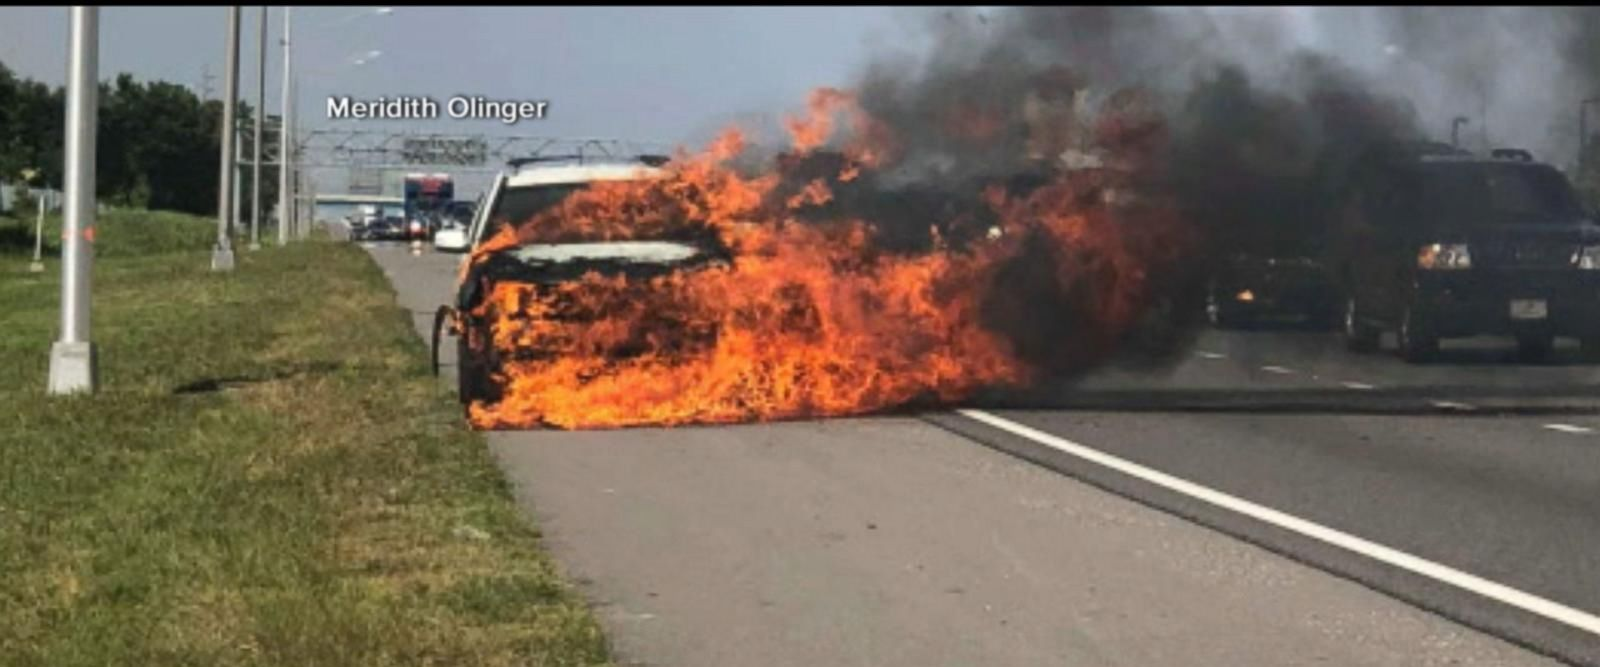 VIDEO: Hero saves highway driver from car on fire